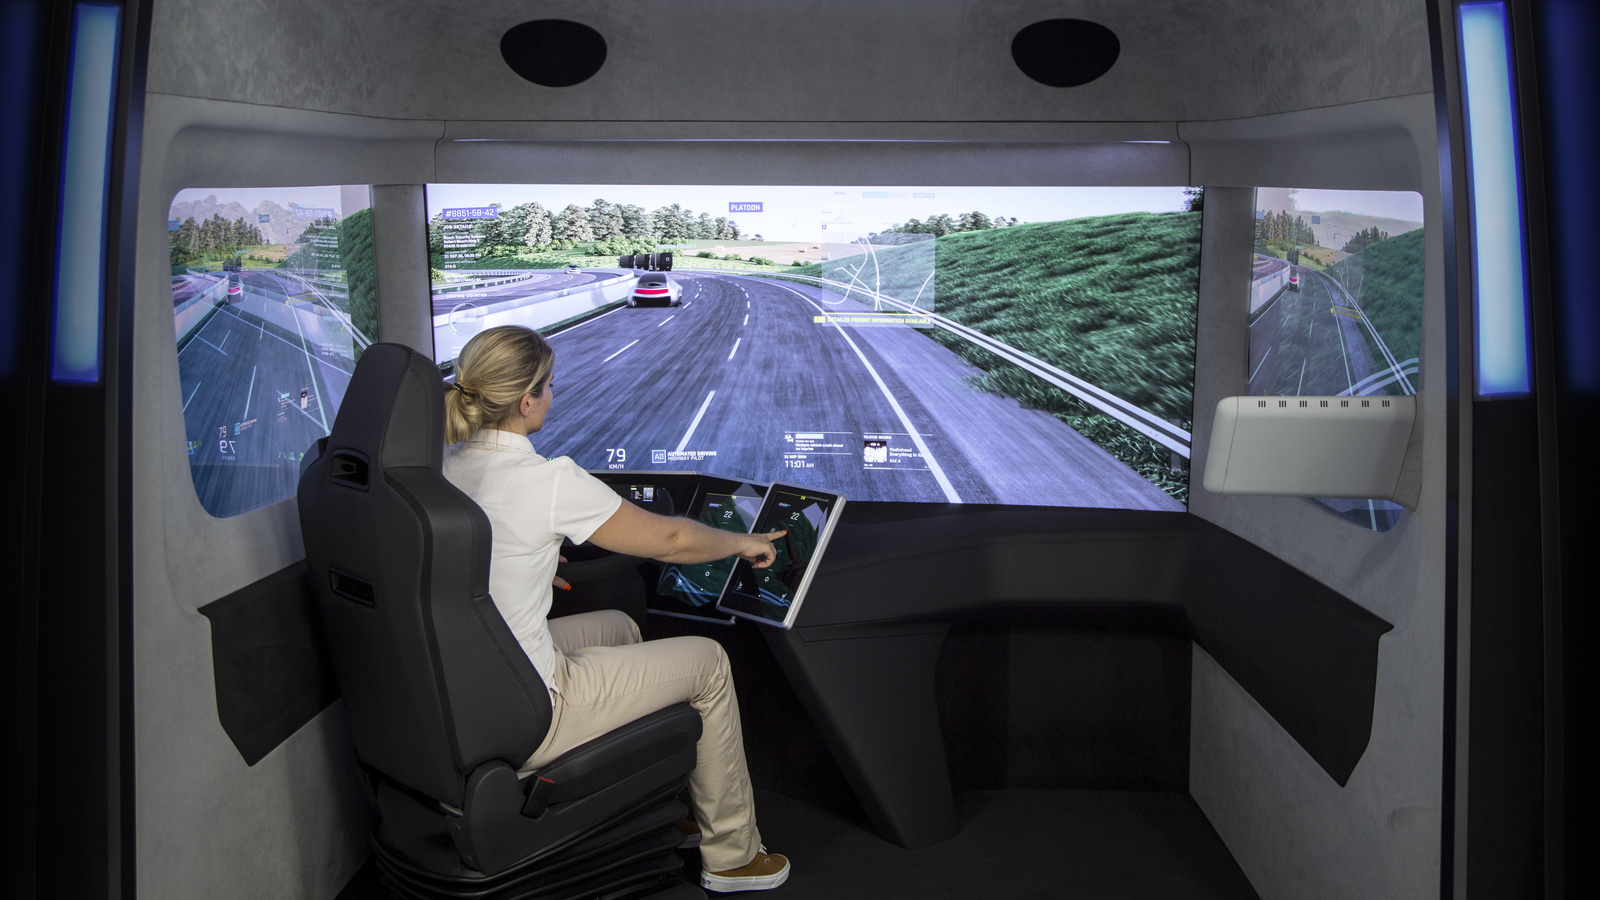 VisionX concept study provides a glimpse into the future of trucks